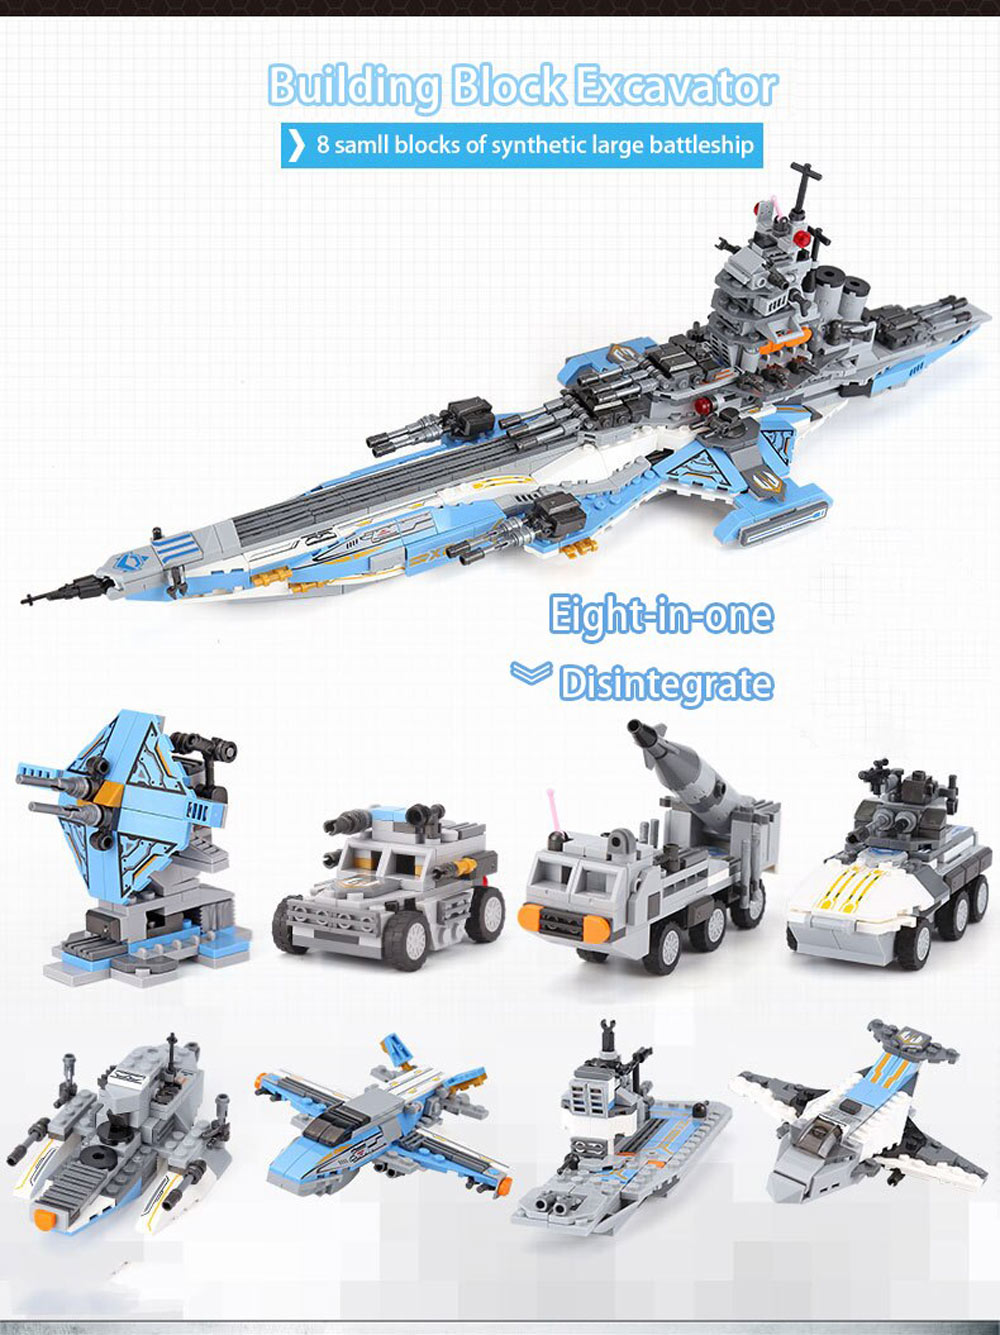 XINGBAO 13001 Space Battleship 8 in 1 Building Block Puzzle Toys